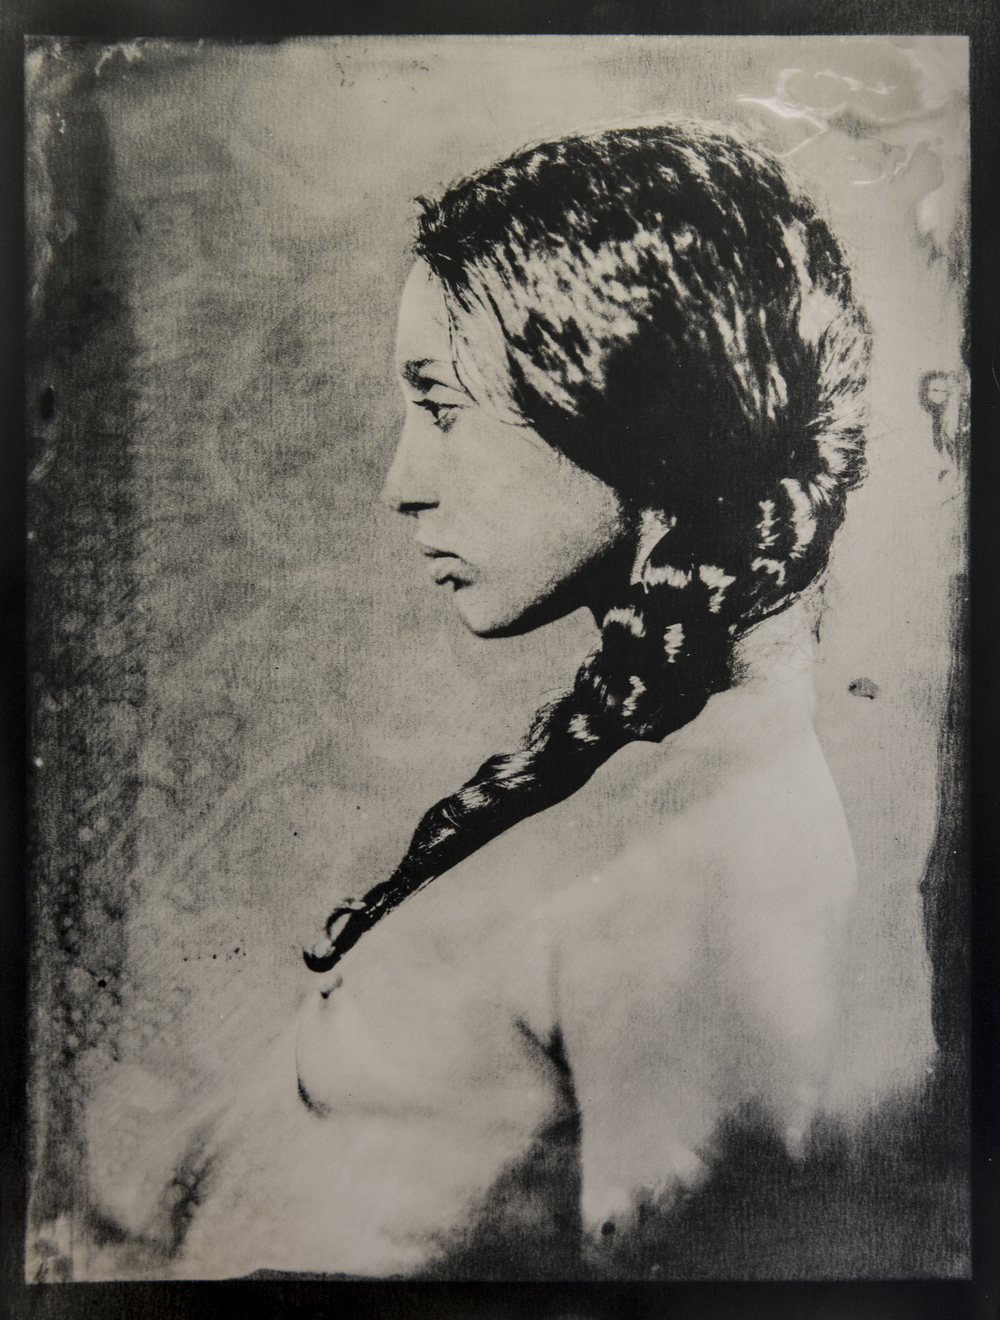 Nefer - Lith print - edition of 6